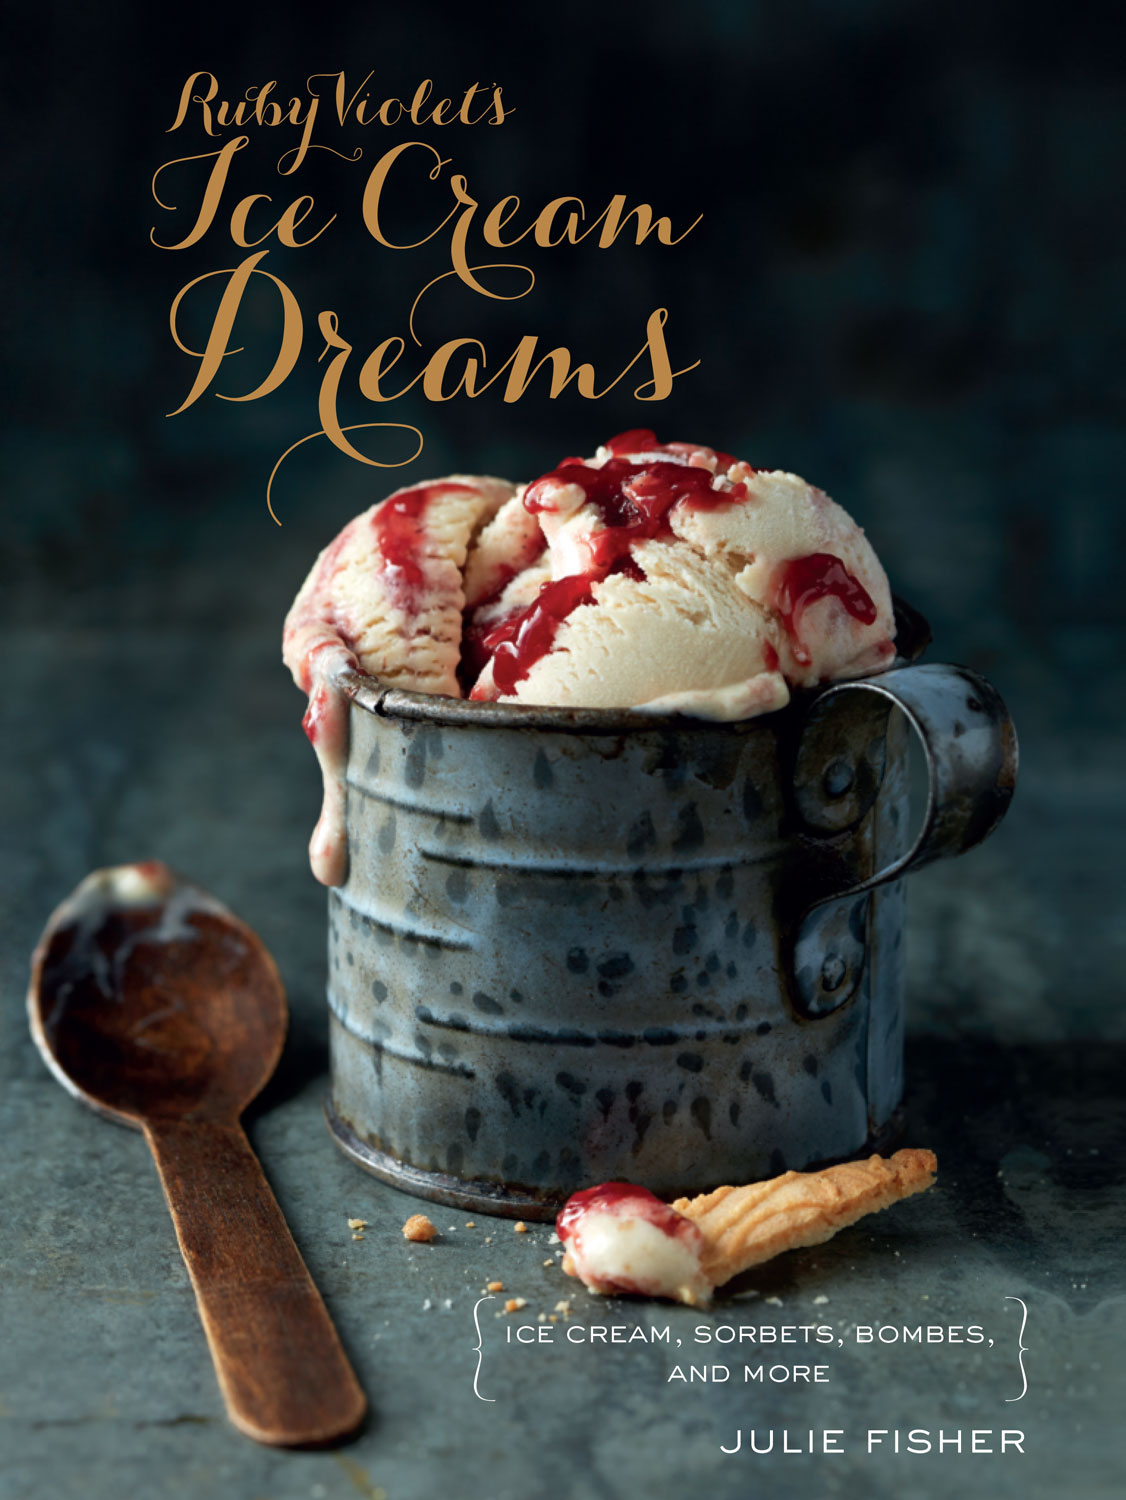 Ruby Violet's Ice Cream Dream